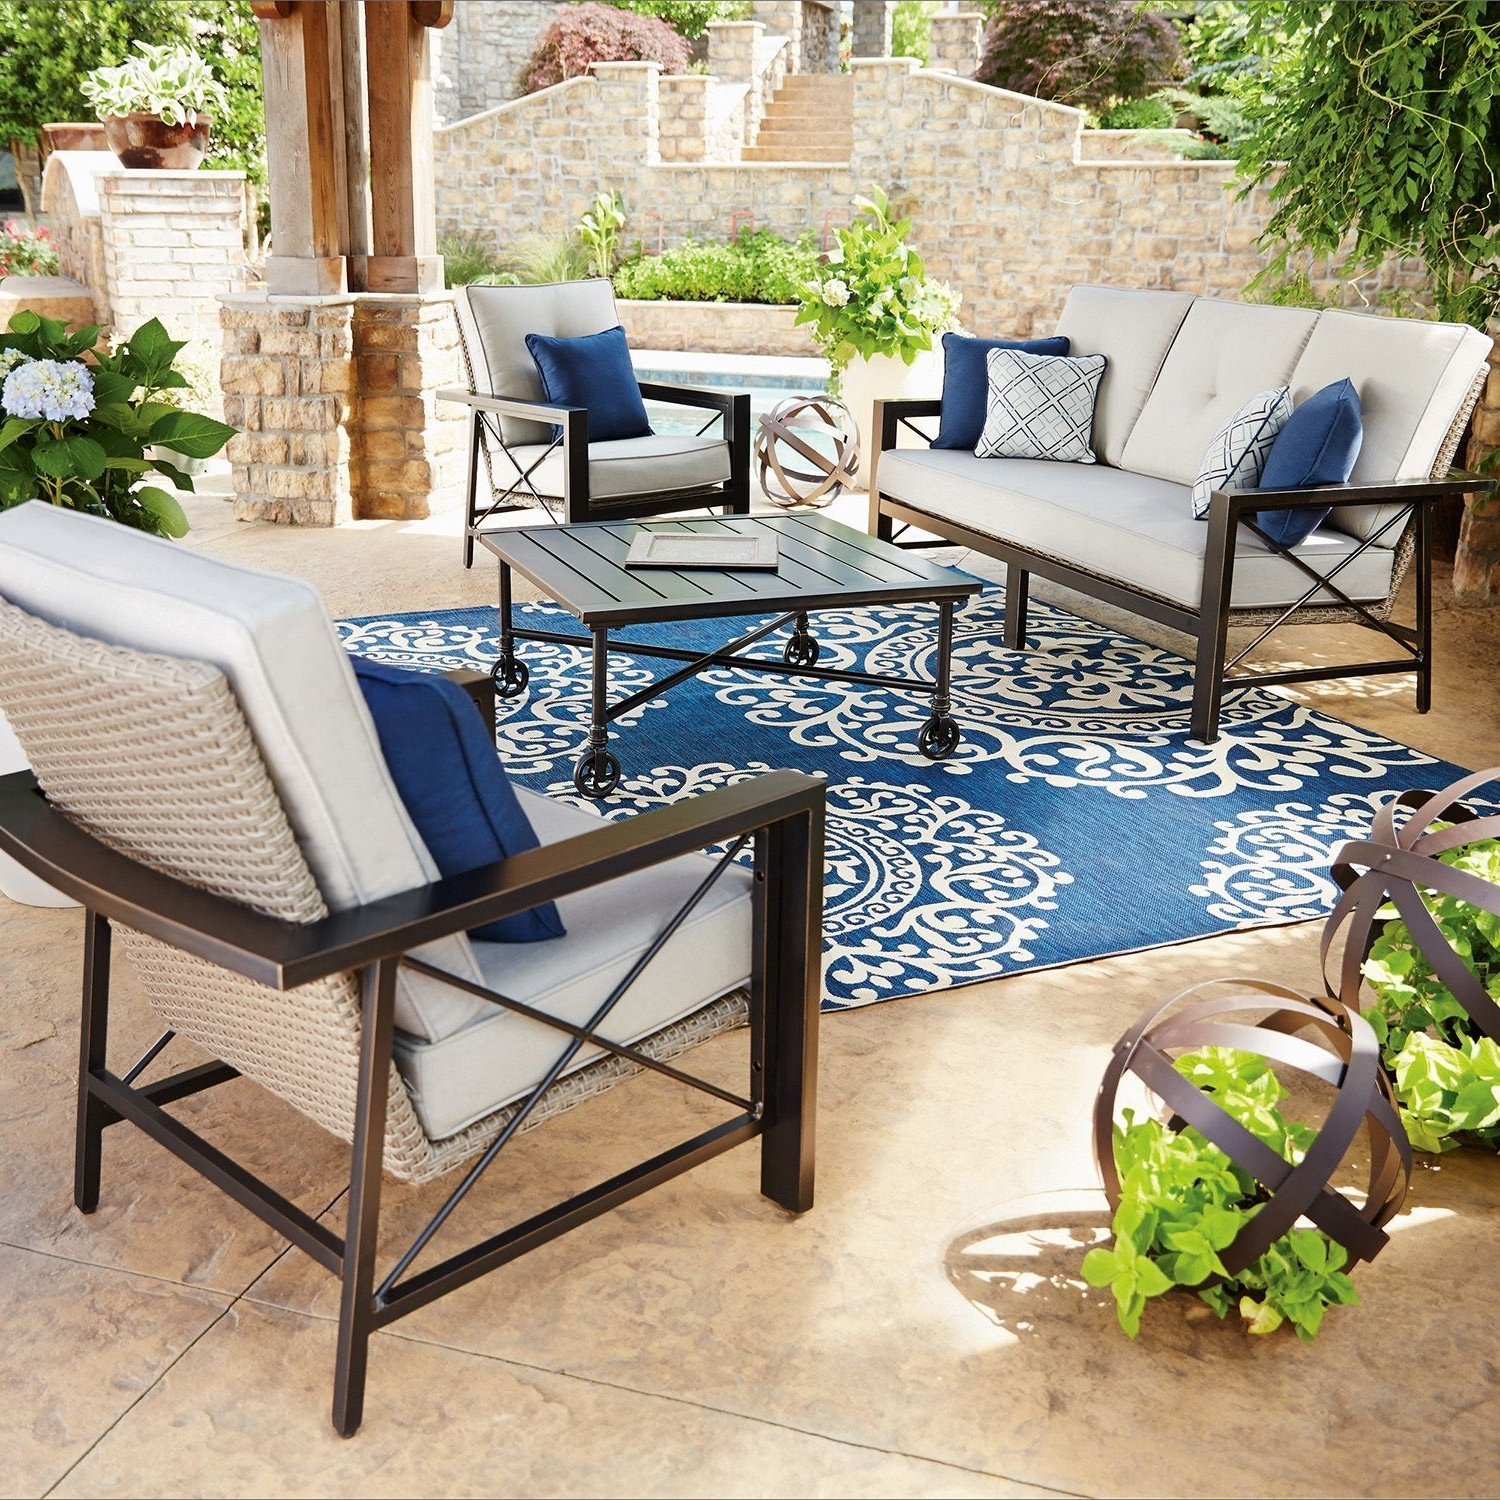 Most Up To Date Patio Conversation Sets At Sam's Club Intended For Member's Mark Katana 4 Piece Seating Set (View 8 of 15)